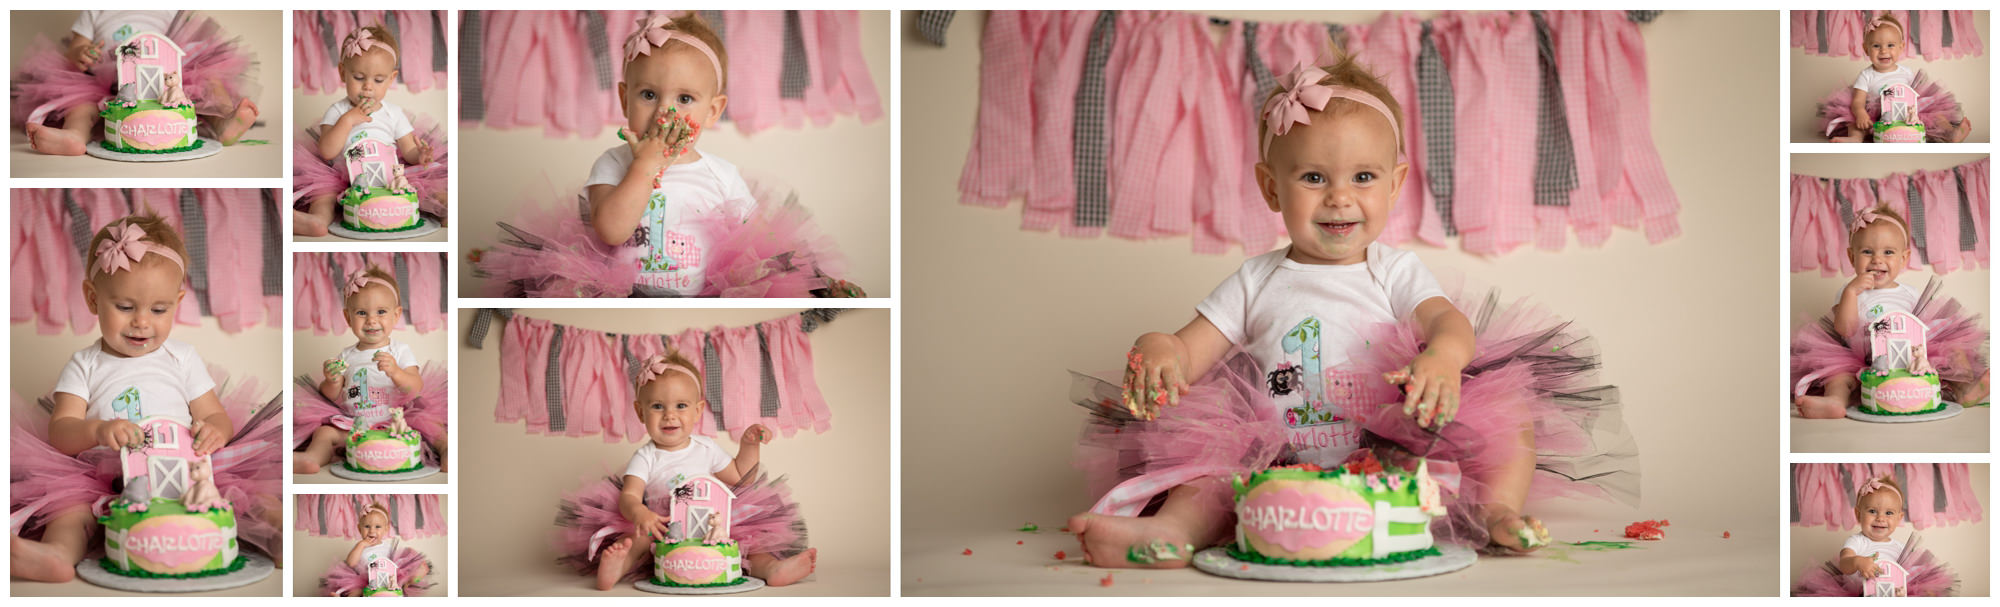 smash cake photoshoot in destin florida